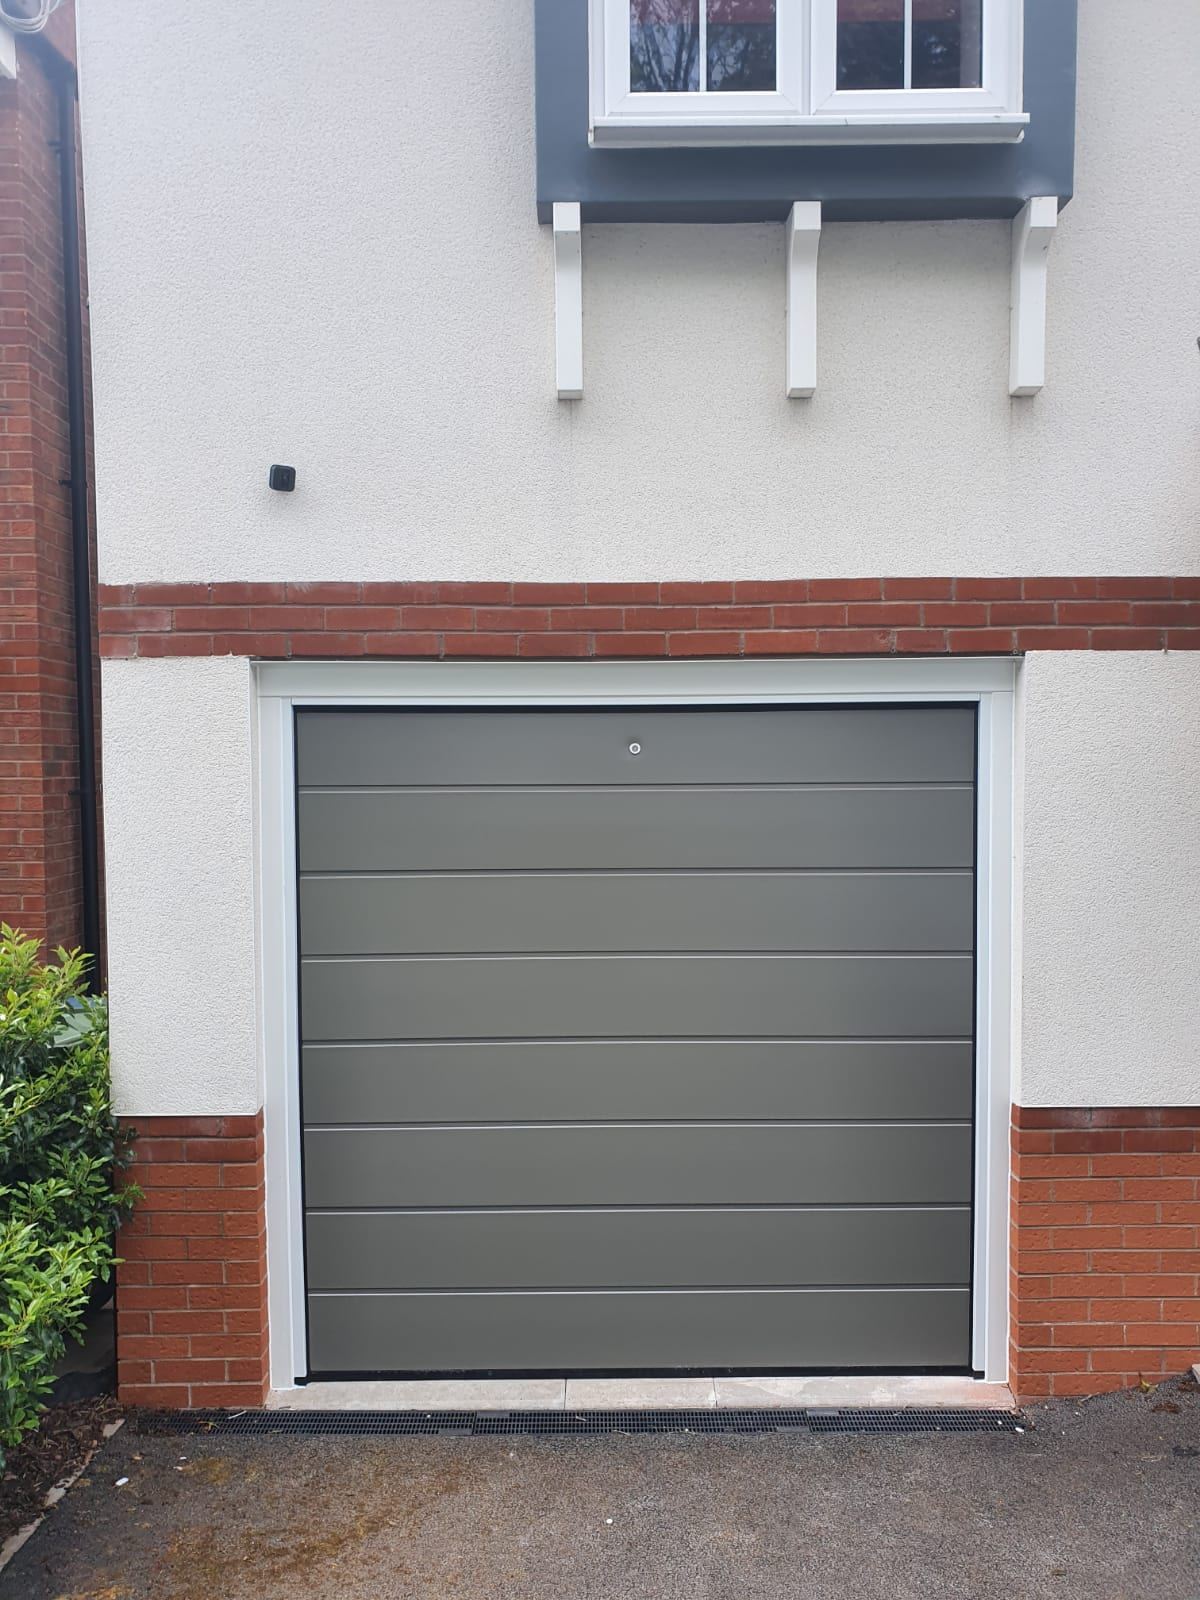 Alutech sectional garage door in the M-ribbed design, RAL 7039 with a smooth finish, complete with white tracks. Door is electrically operated and complete with 1 x sectional door motor, external release kit and 2 x remote handsets.